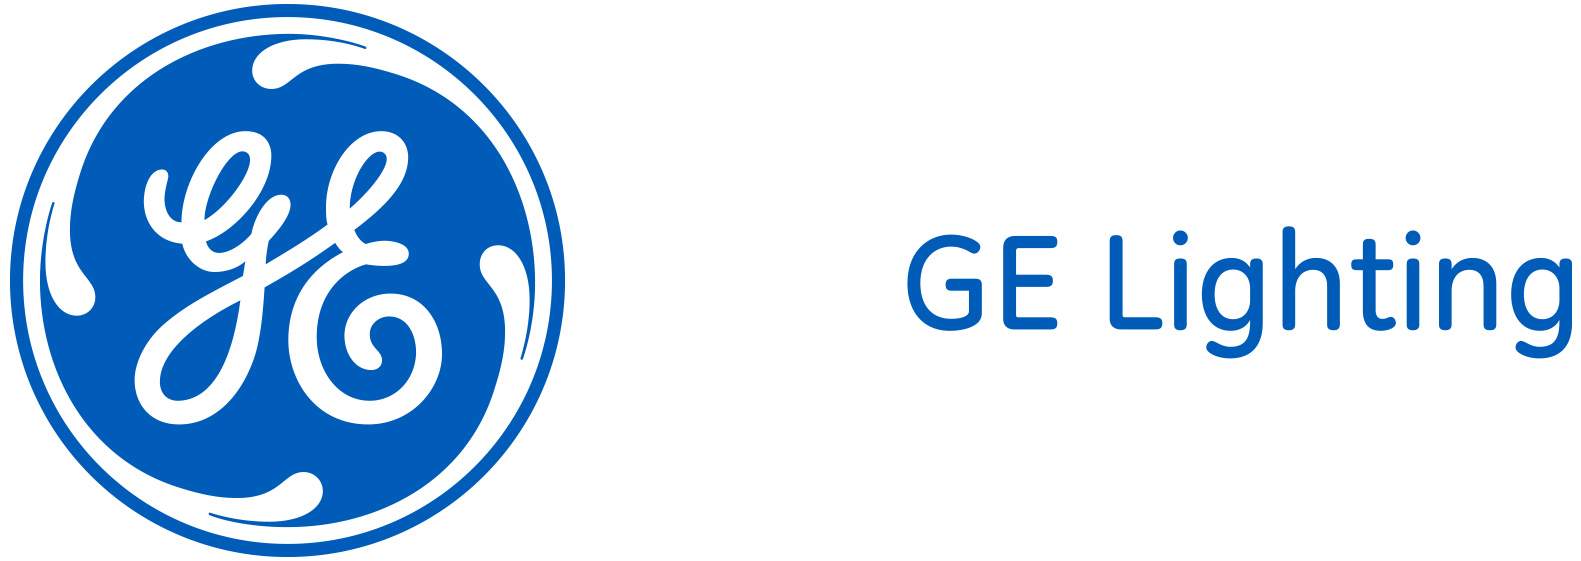 GE Lighting logo2